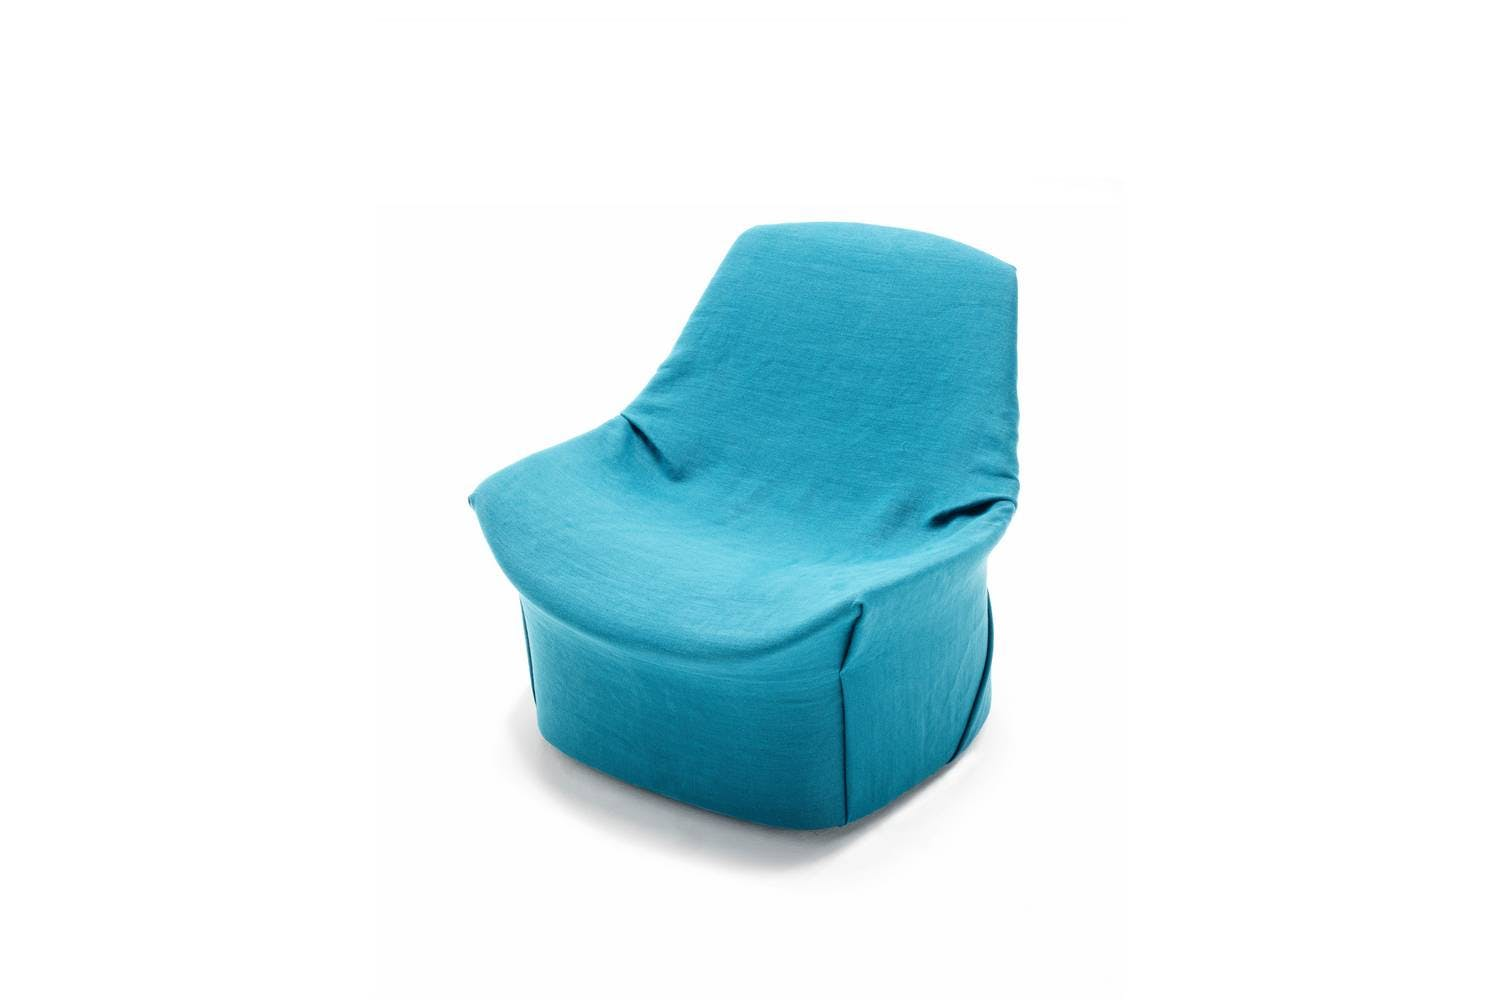 Kiru Armchair By Giopato Amp Coombes For Living Divani